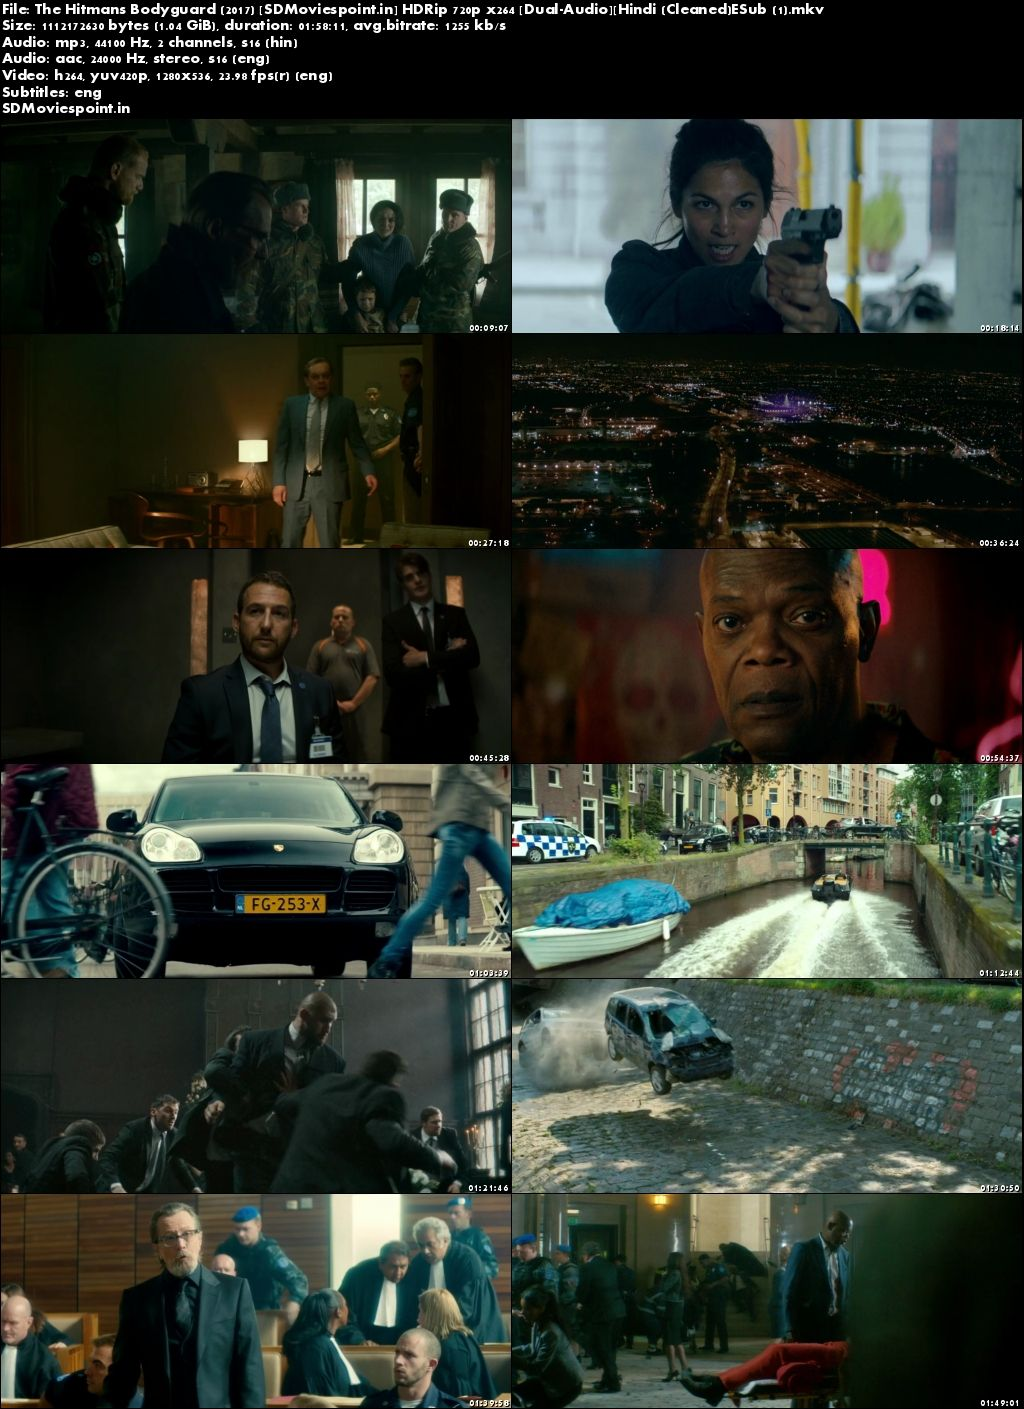 Screen Shots The Hitman's Bodyguard (2017) Full HD Movie Dual Audio In Hindi 720p